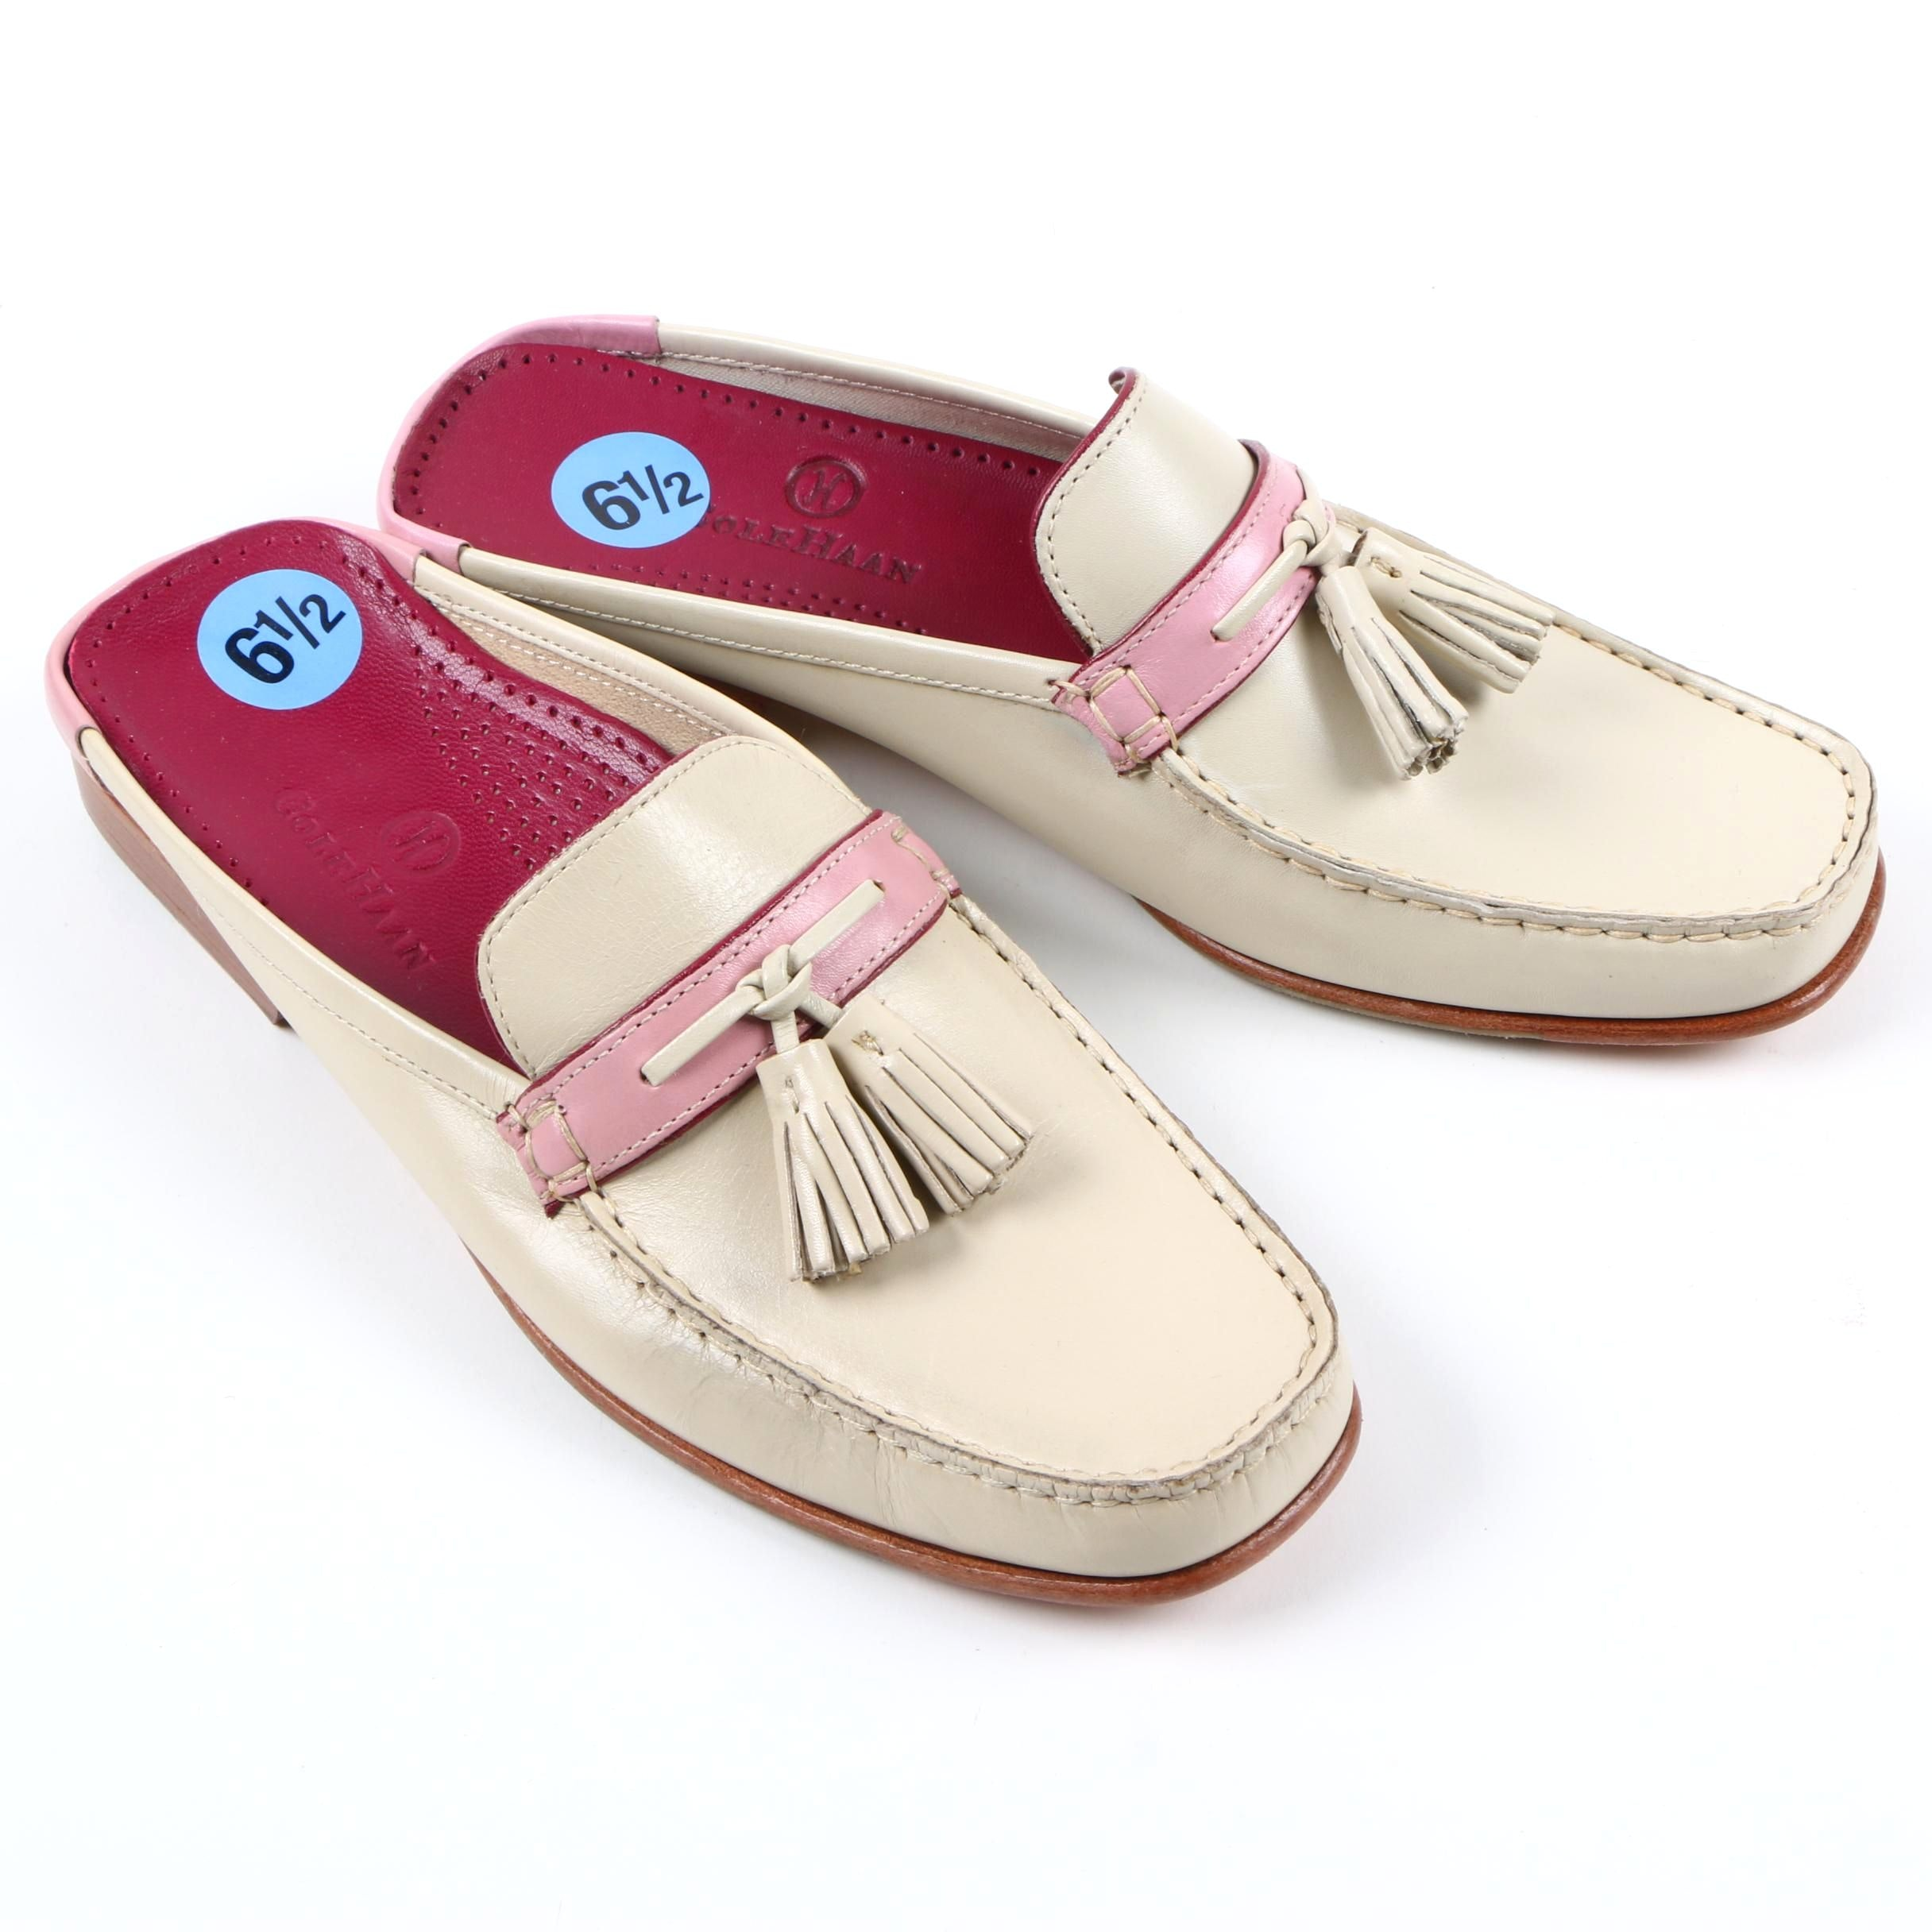 Women's Cole Haan Loafer Mules